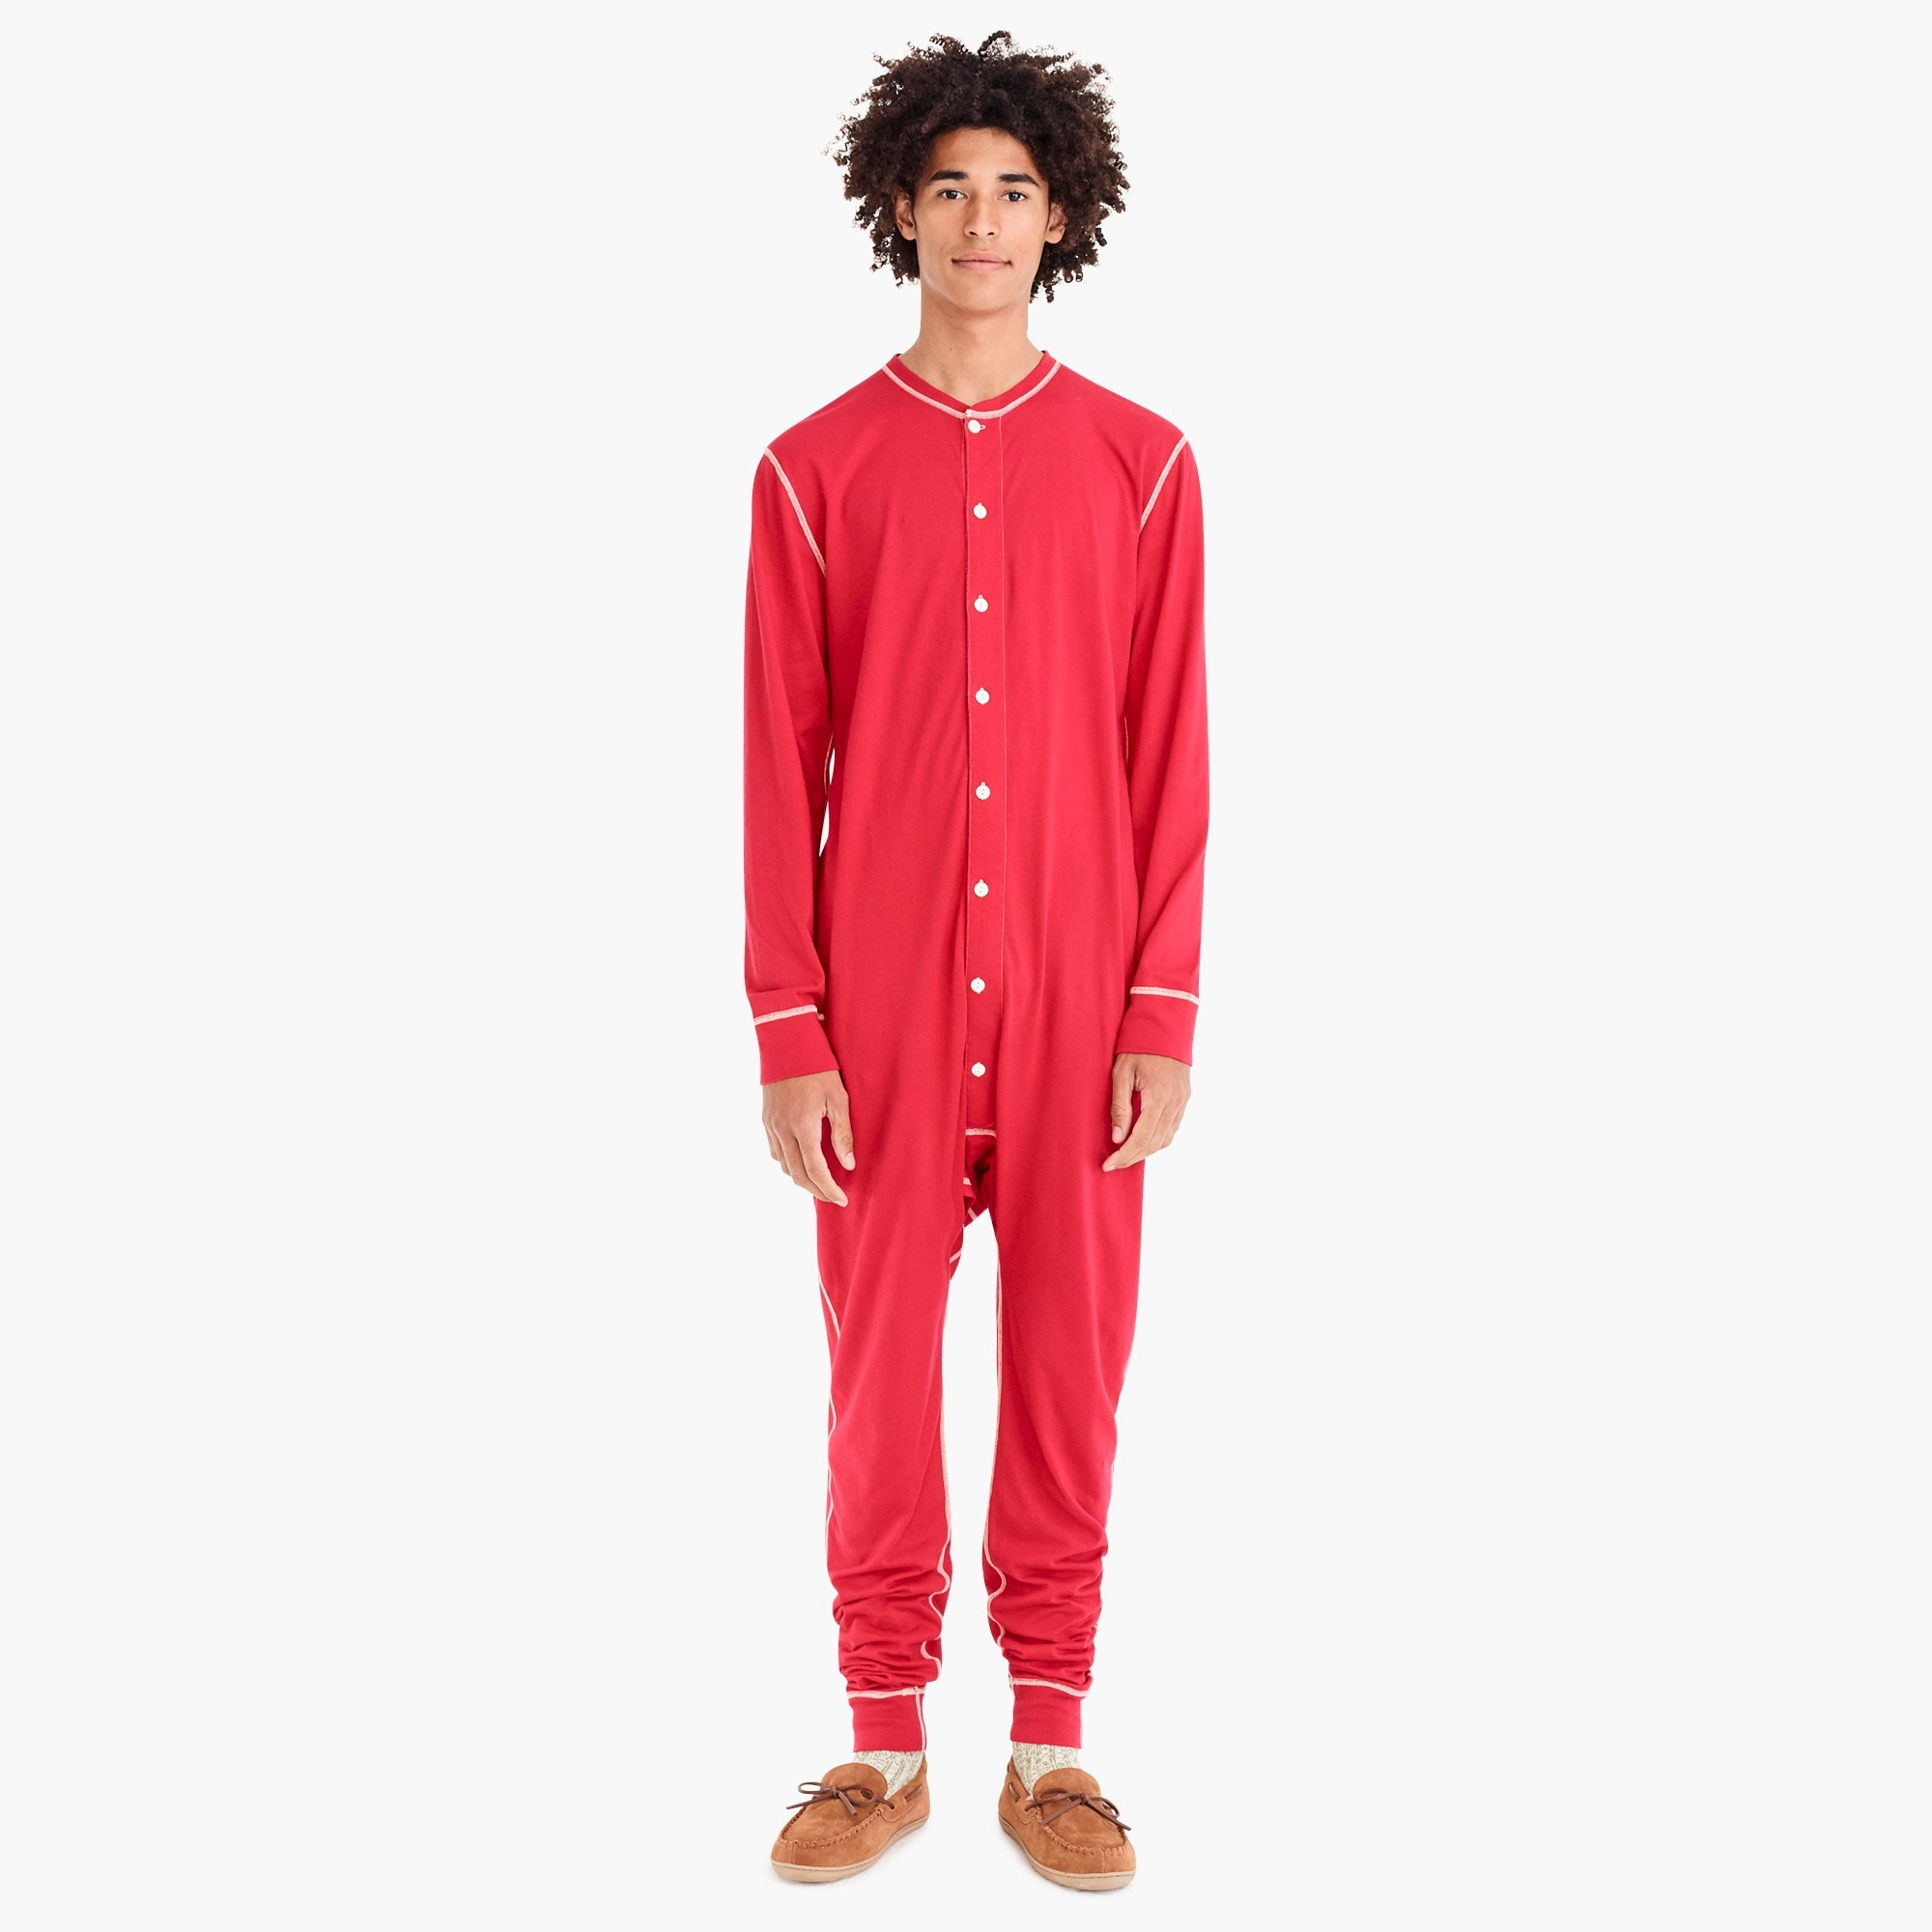 union suit in red : men union suits & onesies